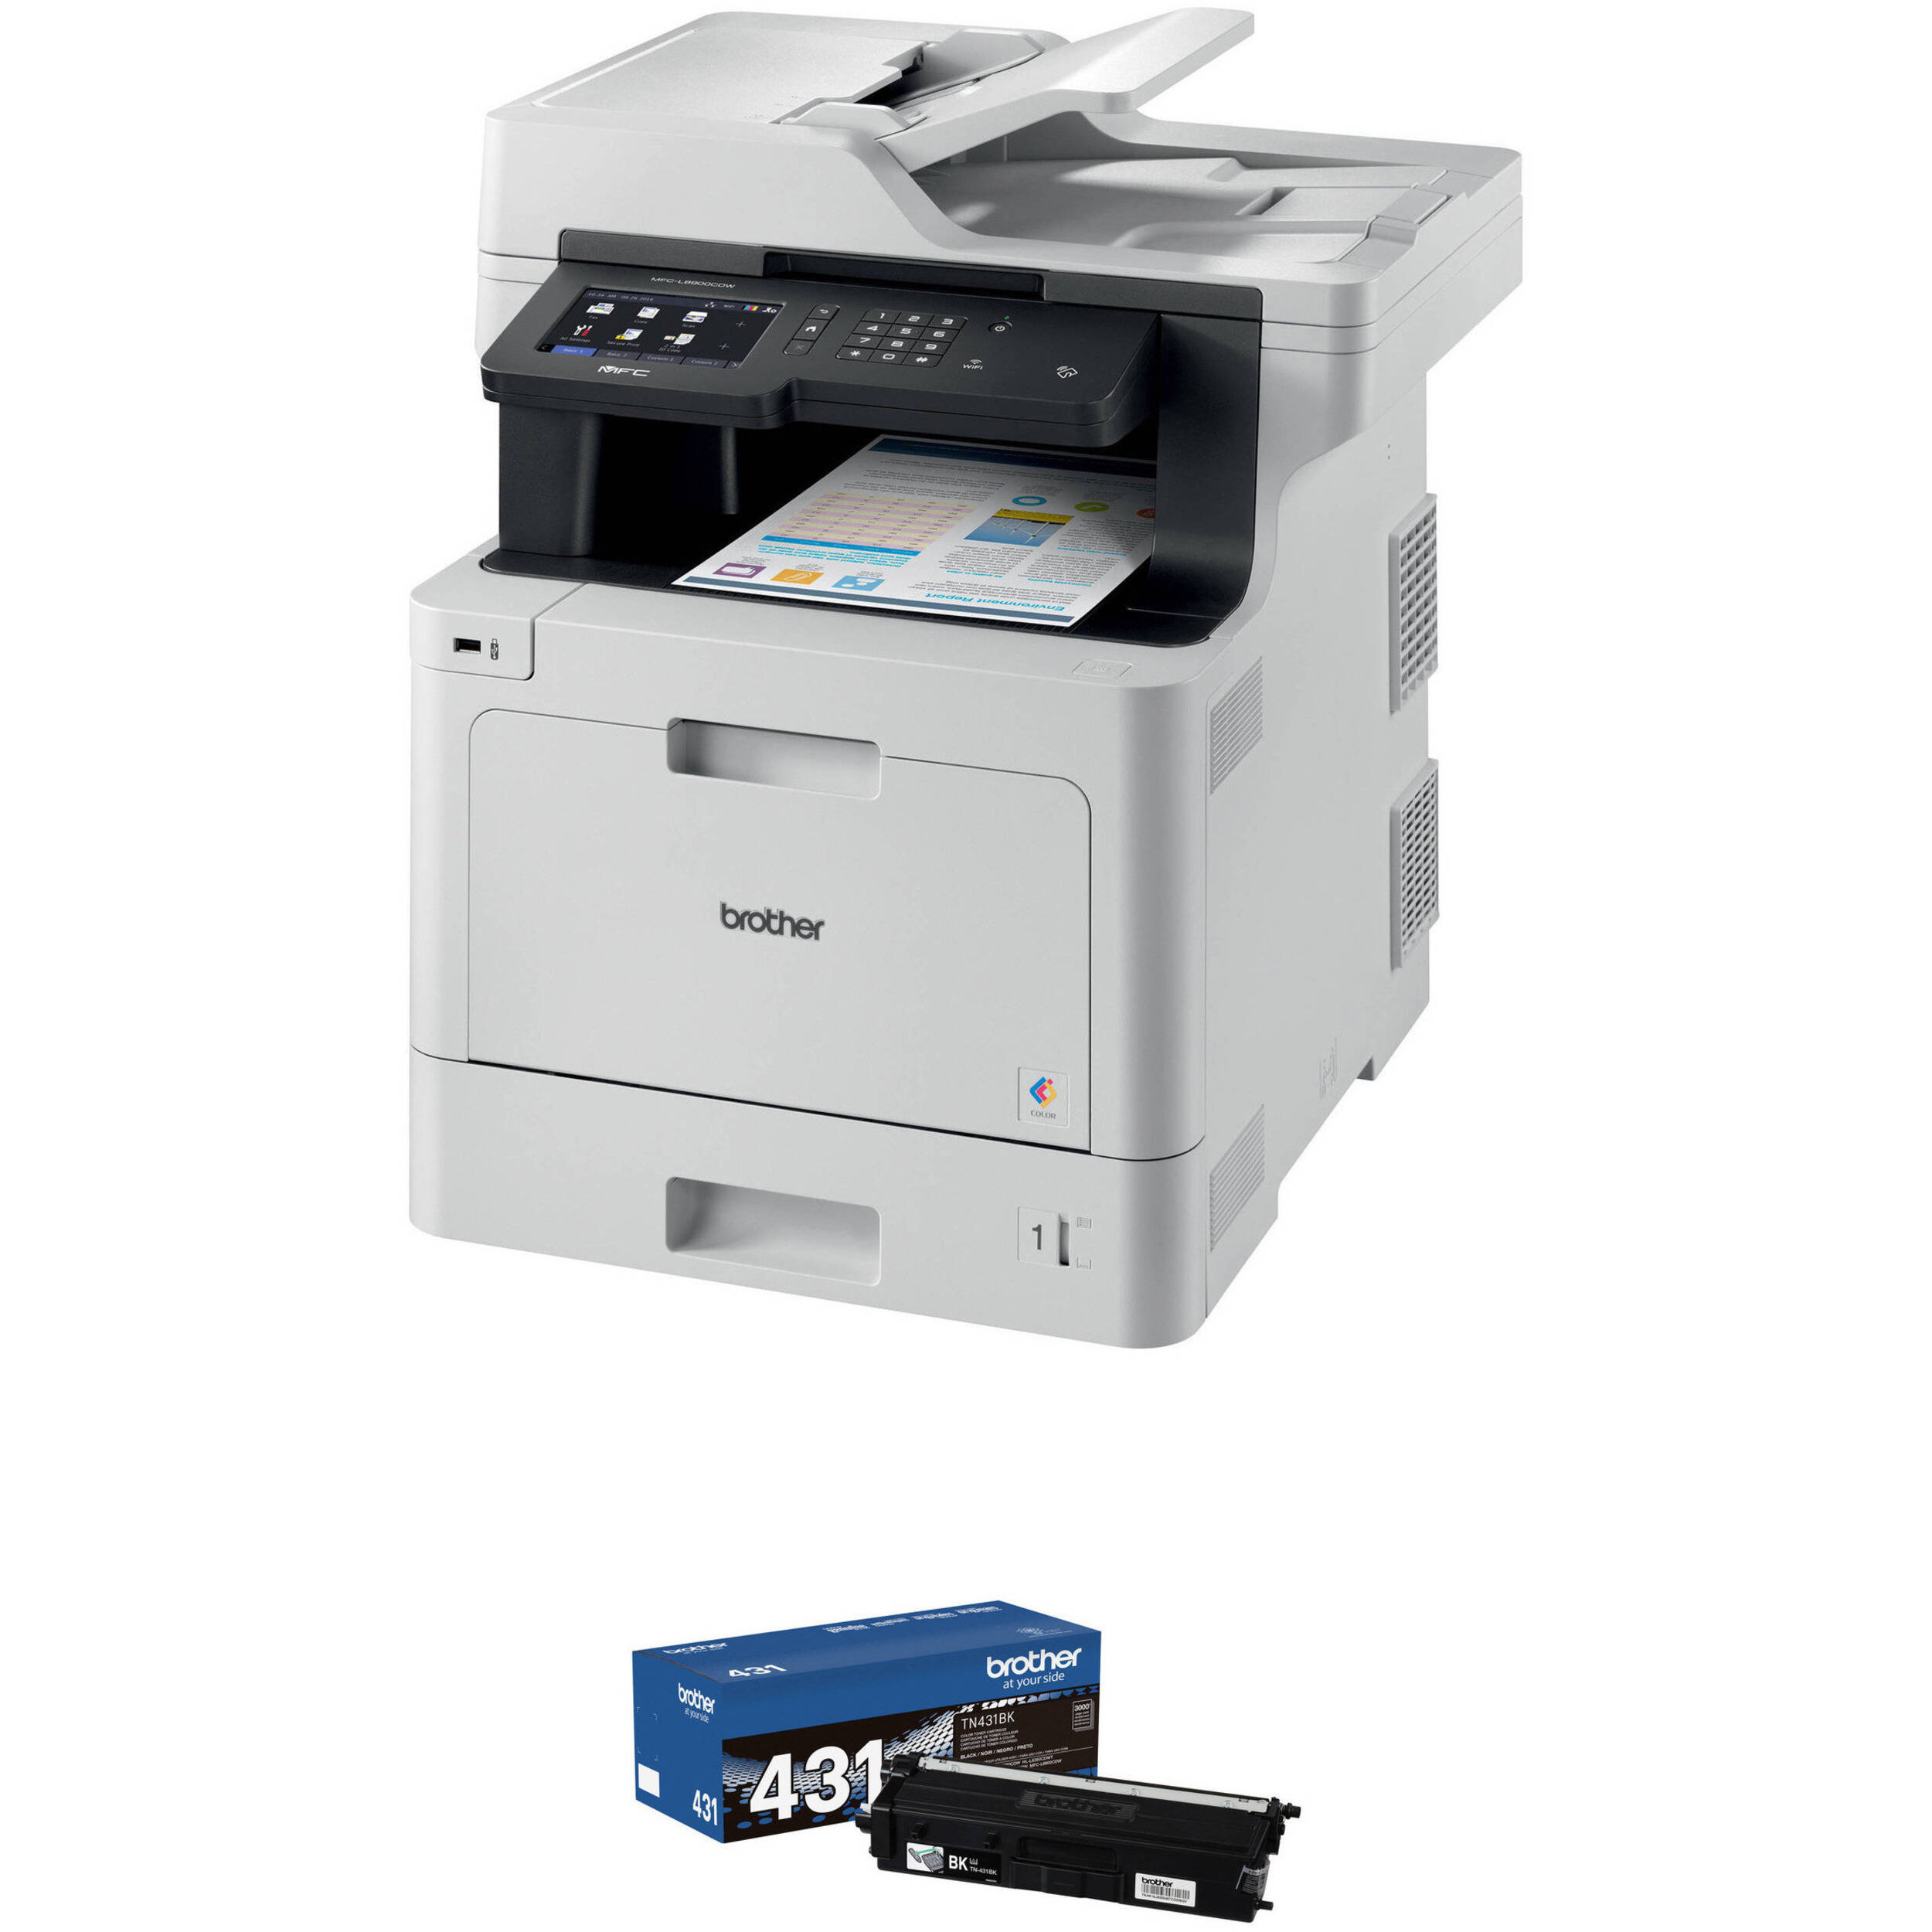 BROTHER DCP-350C SCANNER RESOLUTION IMPROVEMENT DRIVER DOWNLOAD